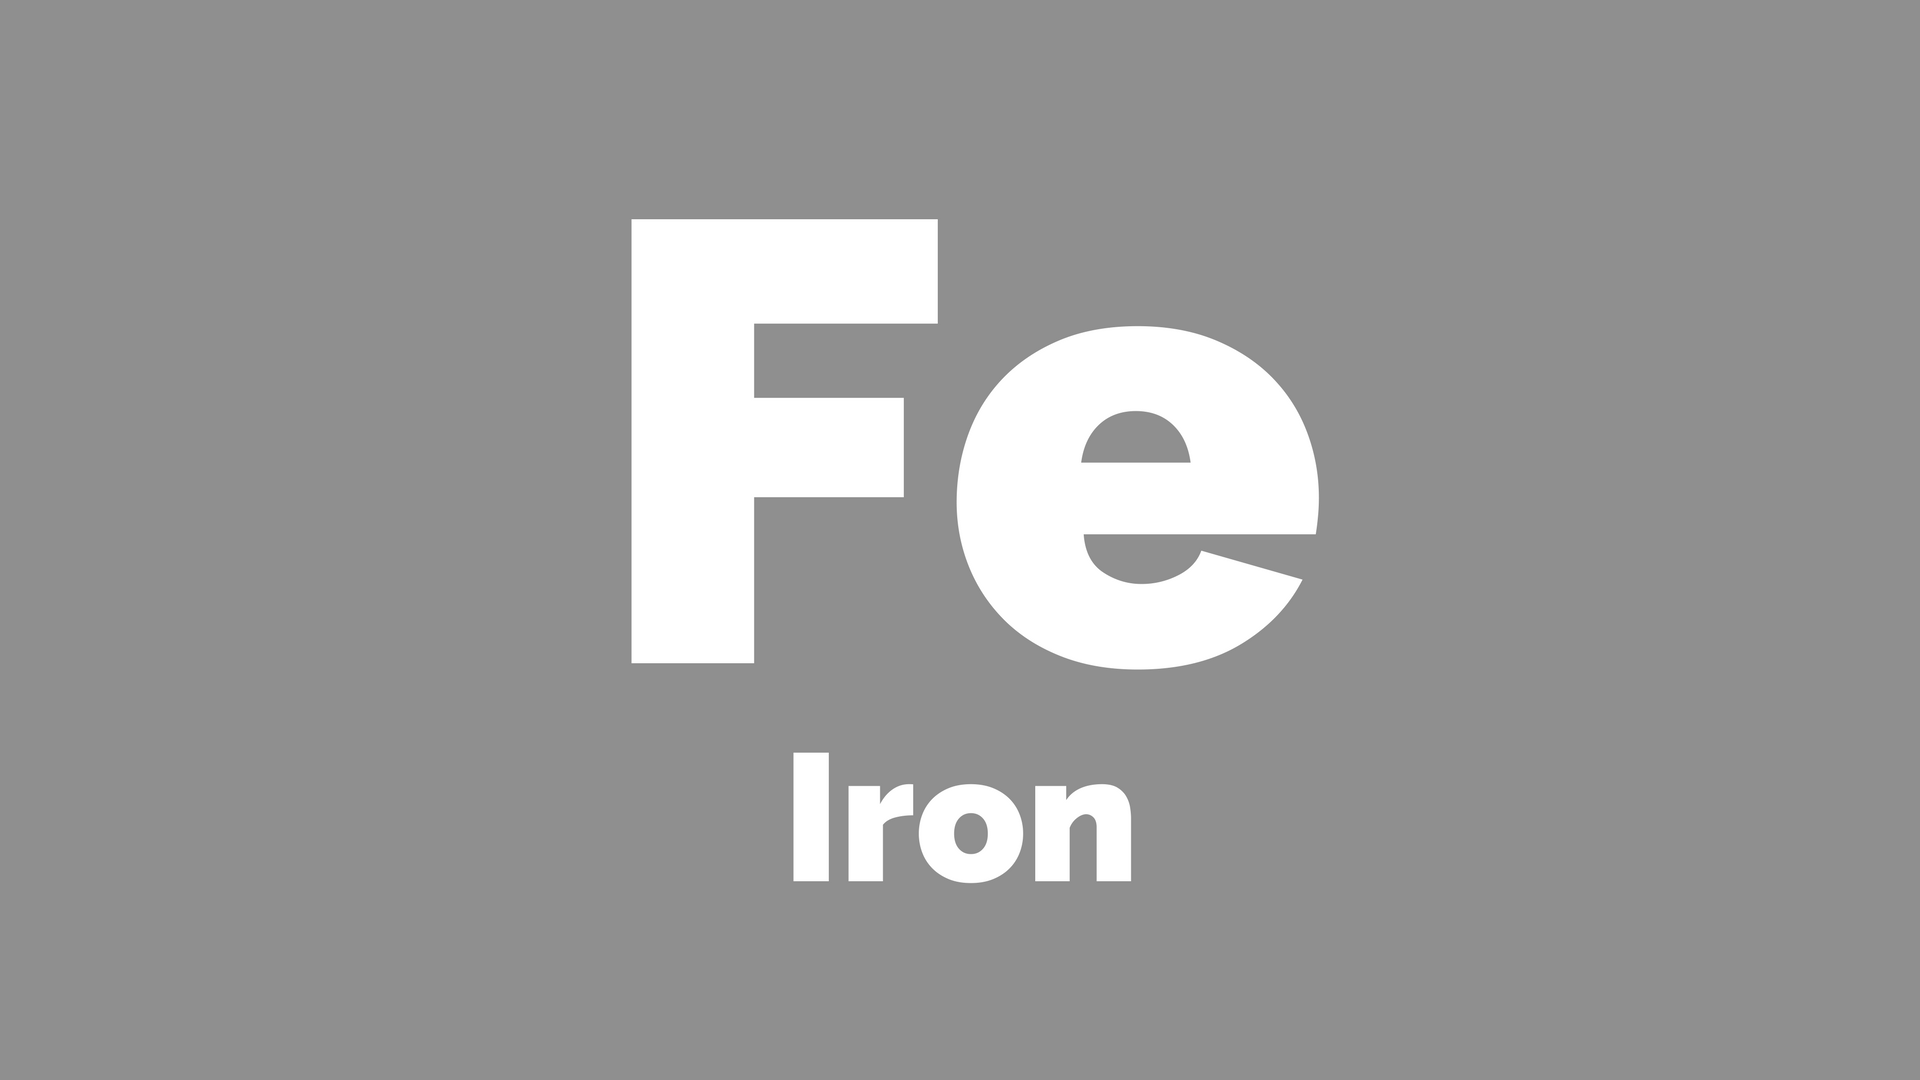 Iron Element Symbol Black And White Can low iron cause anx...